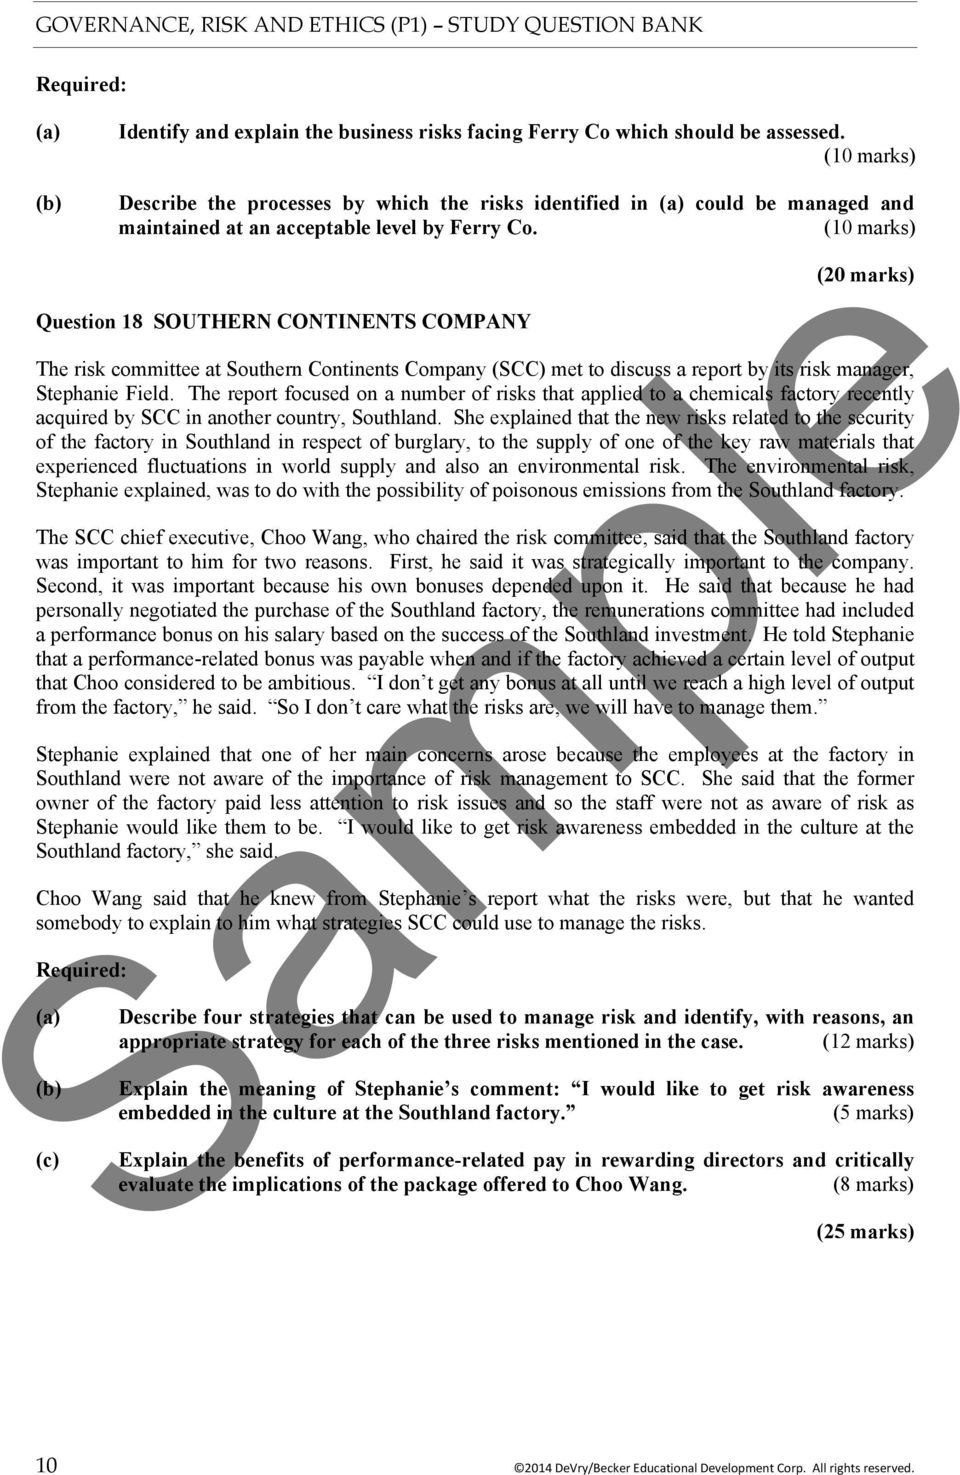 (10 marks) Question 18 SOUTHERN CONTINENTS COMPANY (20 marks) The risk committee at Southern Continents Company (SCC) met to discuss a report by its risk manager, Stephanie Field.